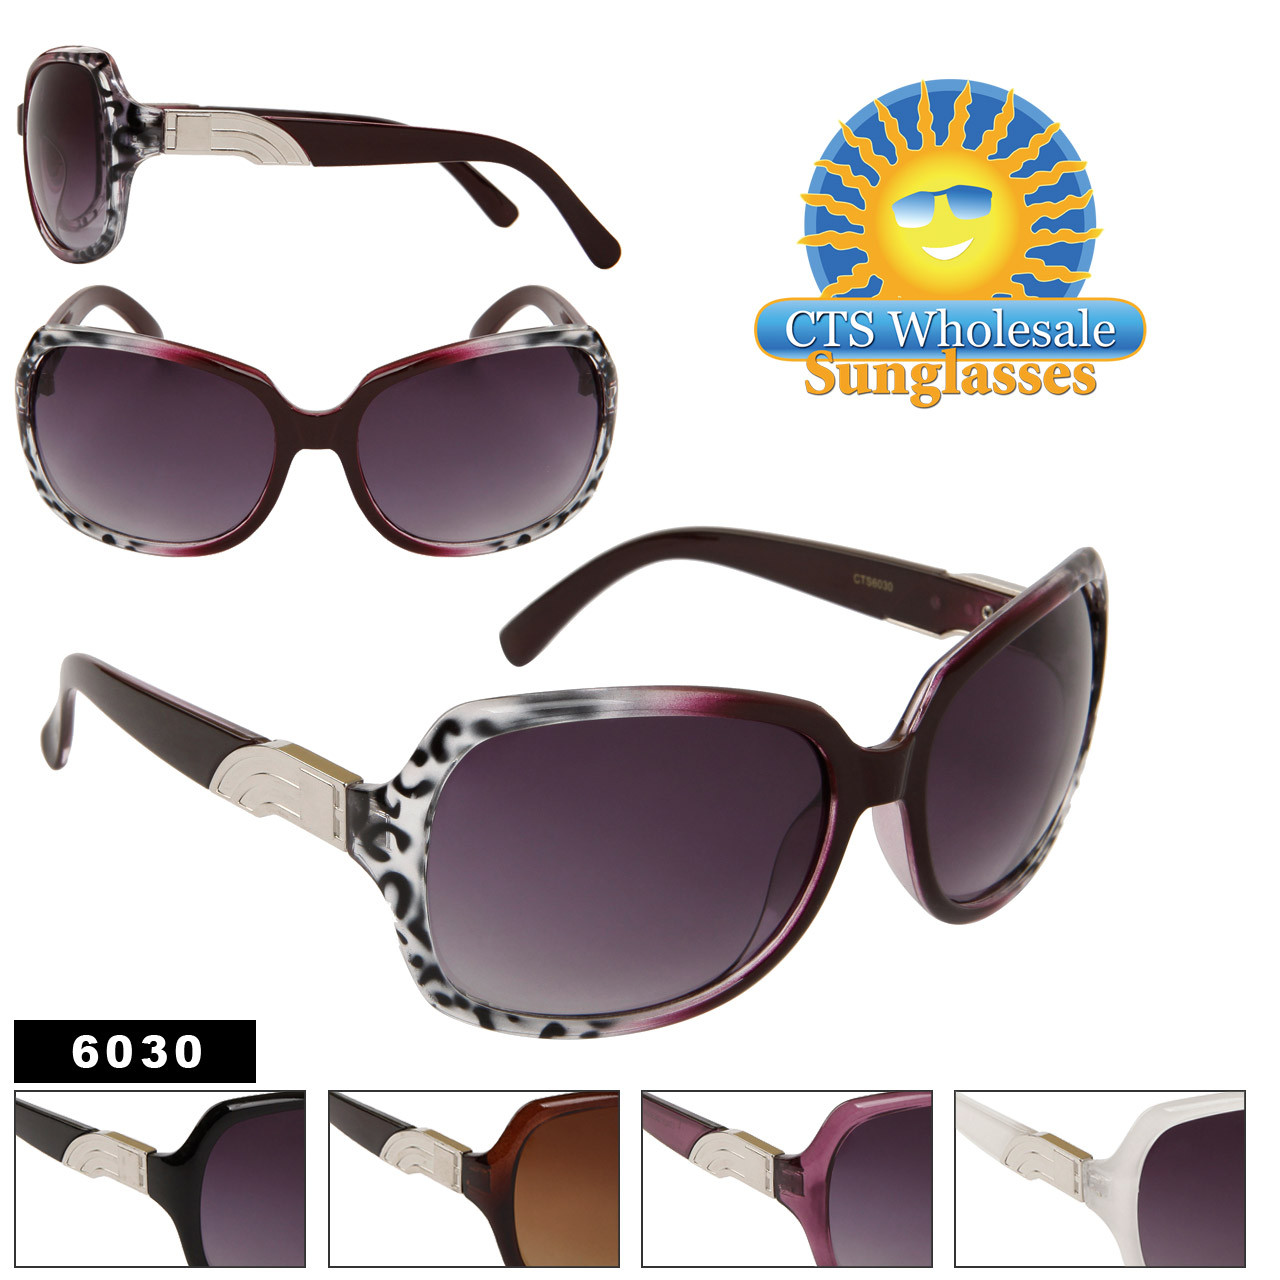 Wholesale Sunglasses 6030